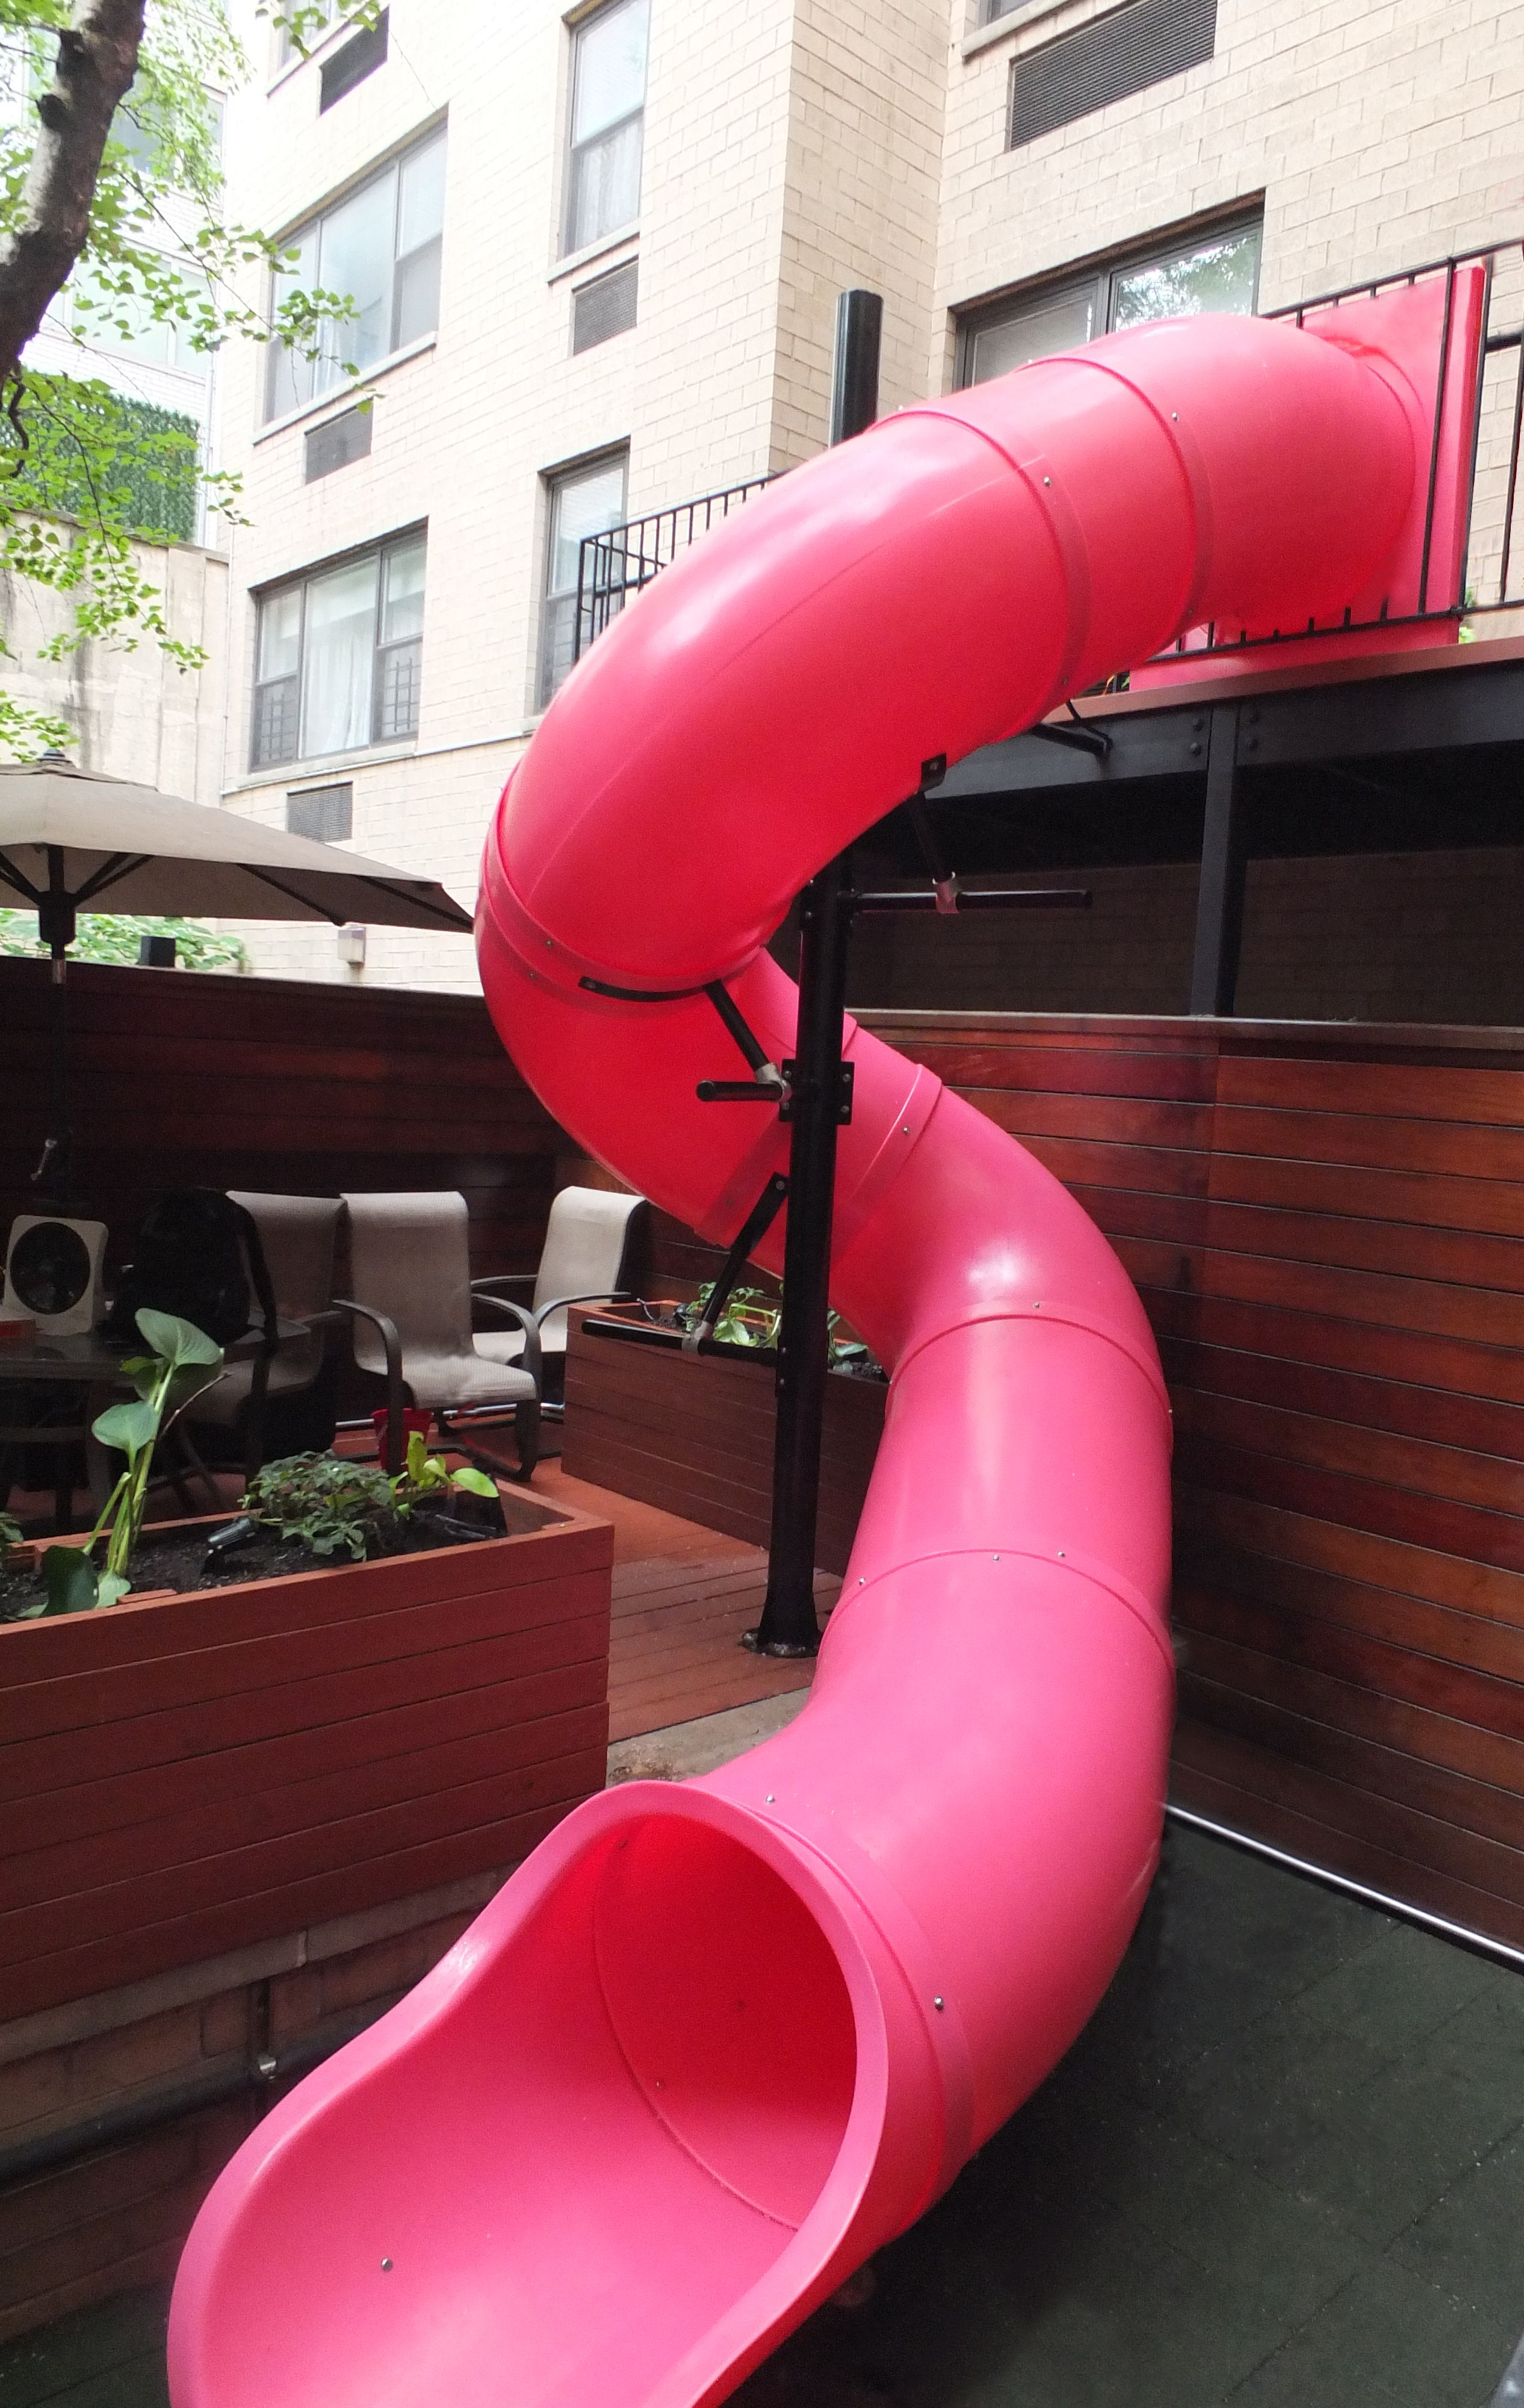 12 Deck Height Spiral Tube Slide From Dunrite Playgrounds Www